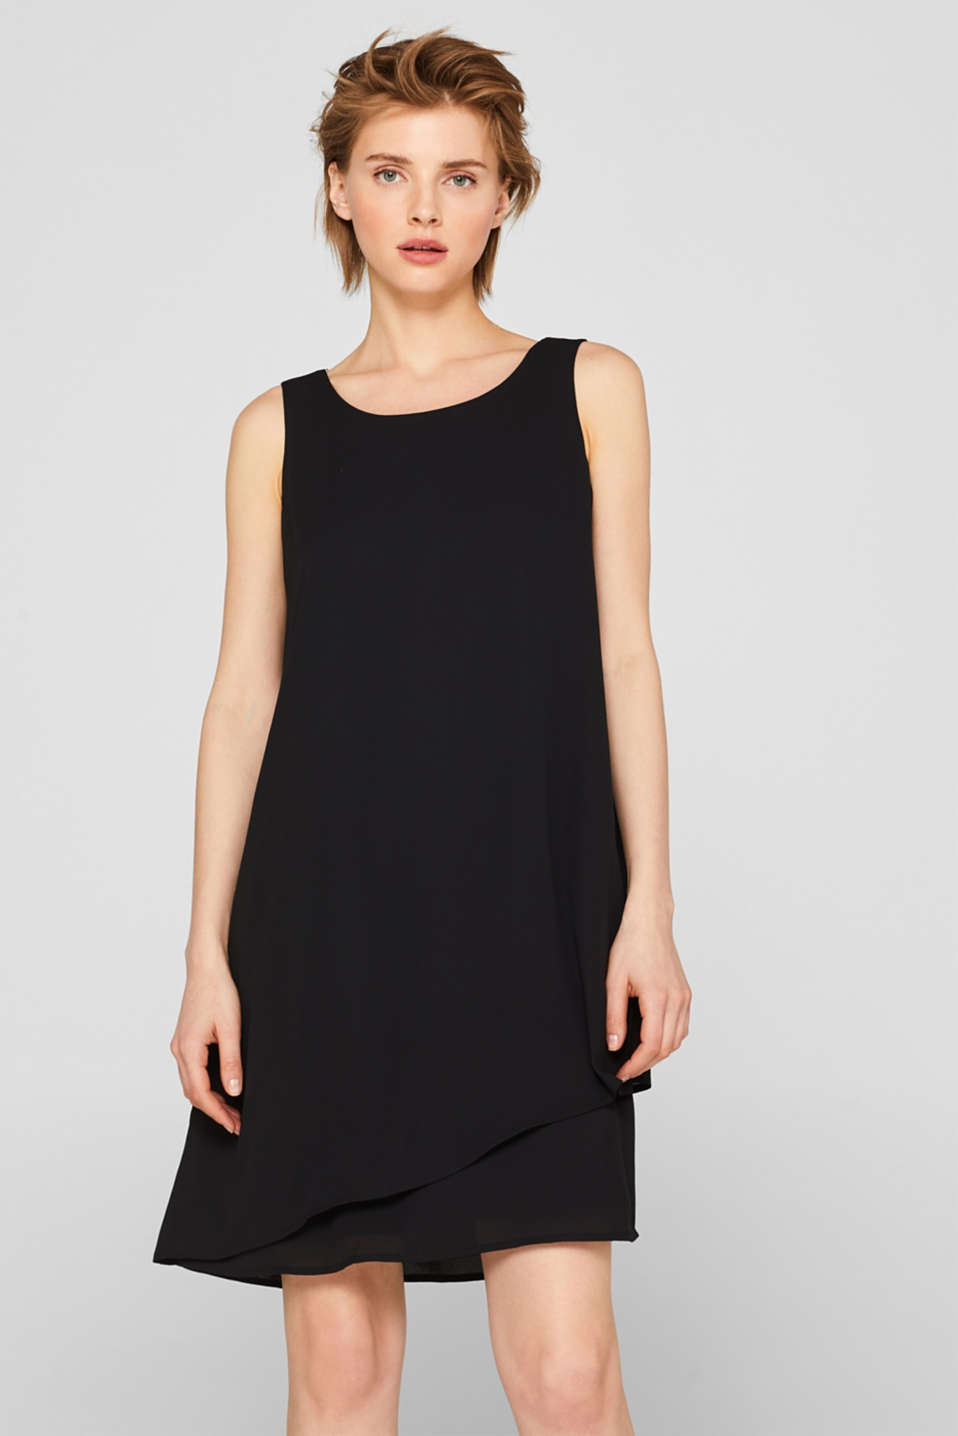 Esprit - Layered chiffon dress with adjustable chain